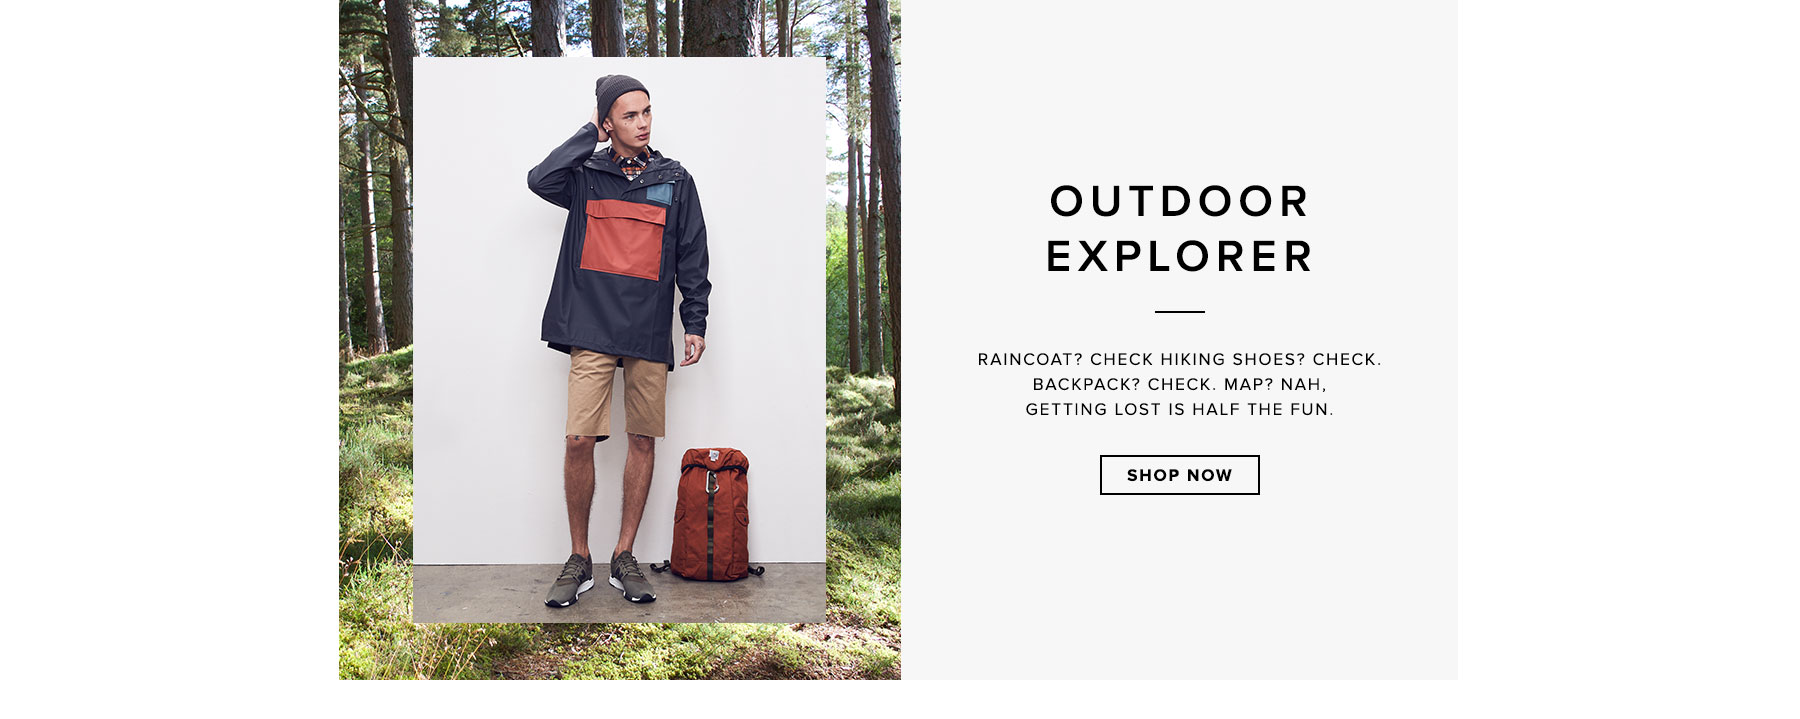 Outdoor Explorer - Raincoat? Check. Hiking shoes? Check. Backpack? Check. Map? Nah, getting lost is half the fun. - Shop Now